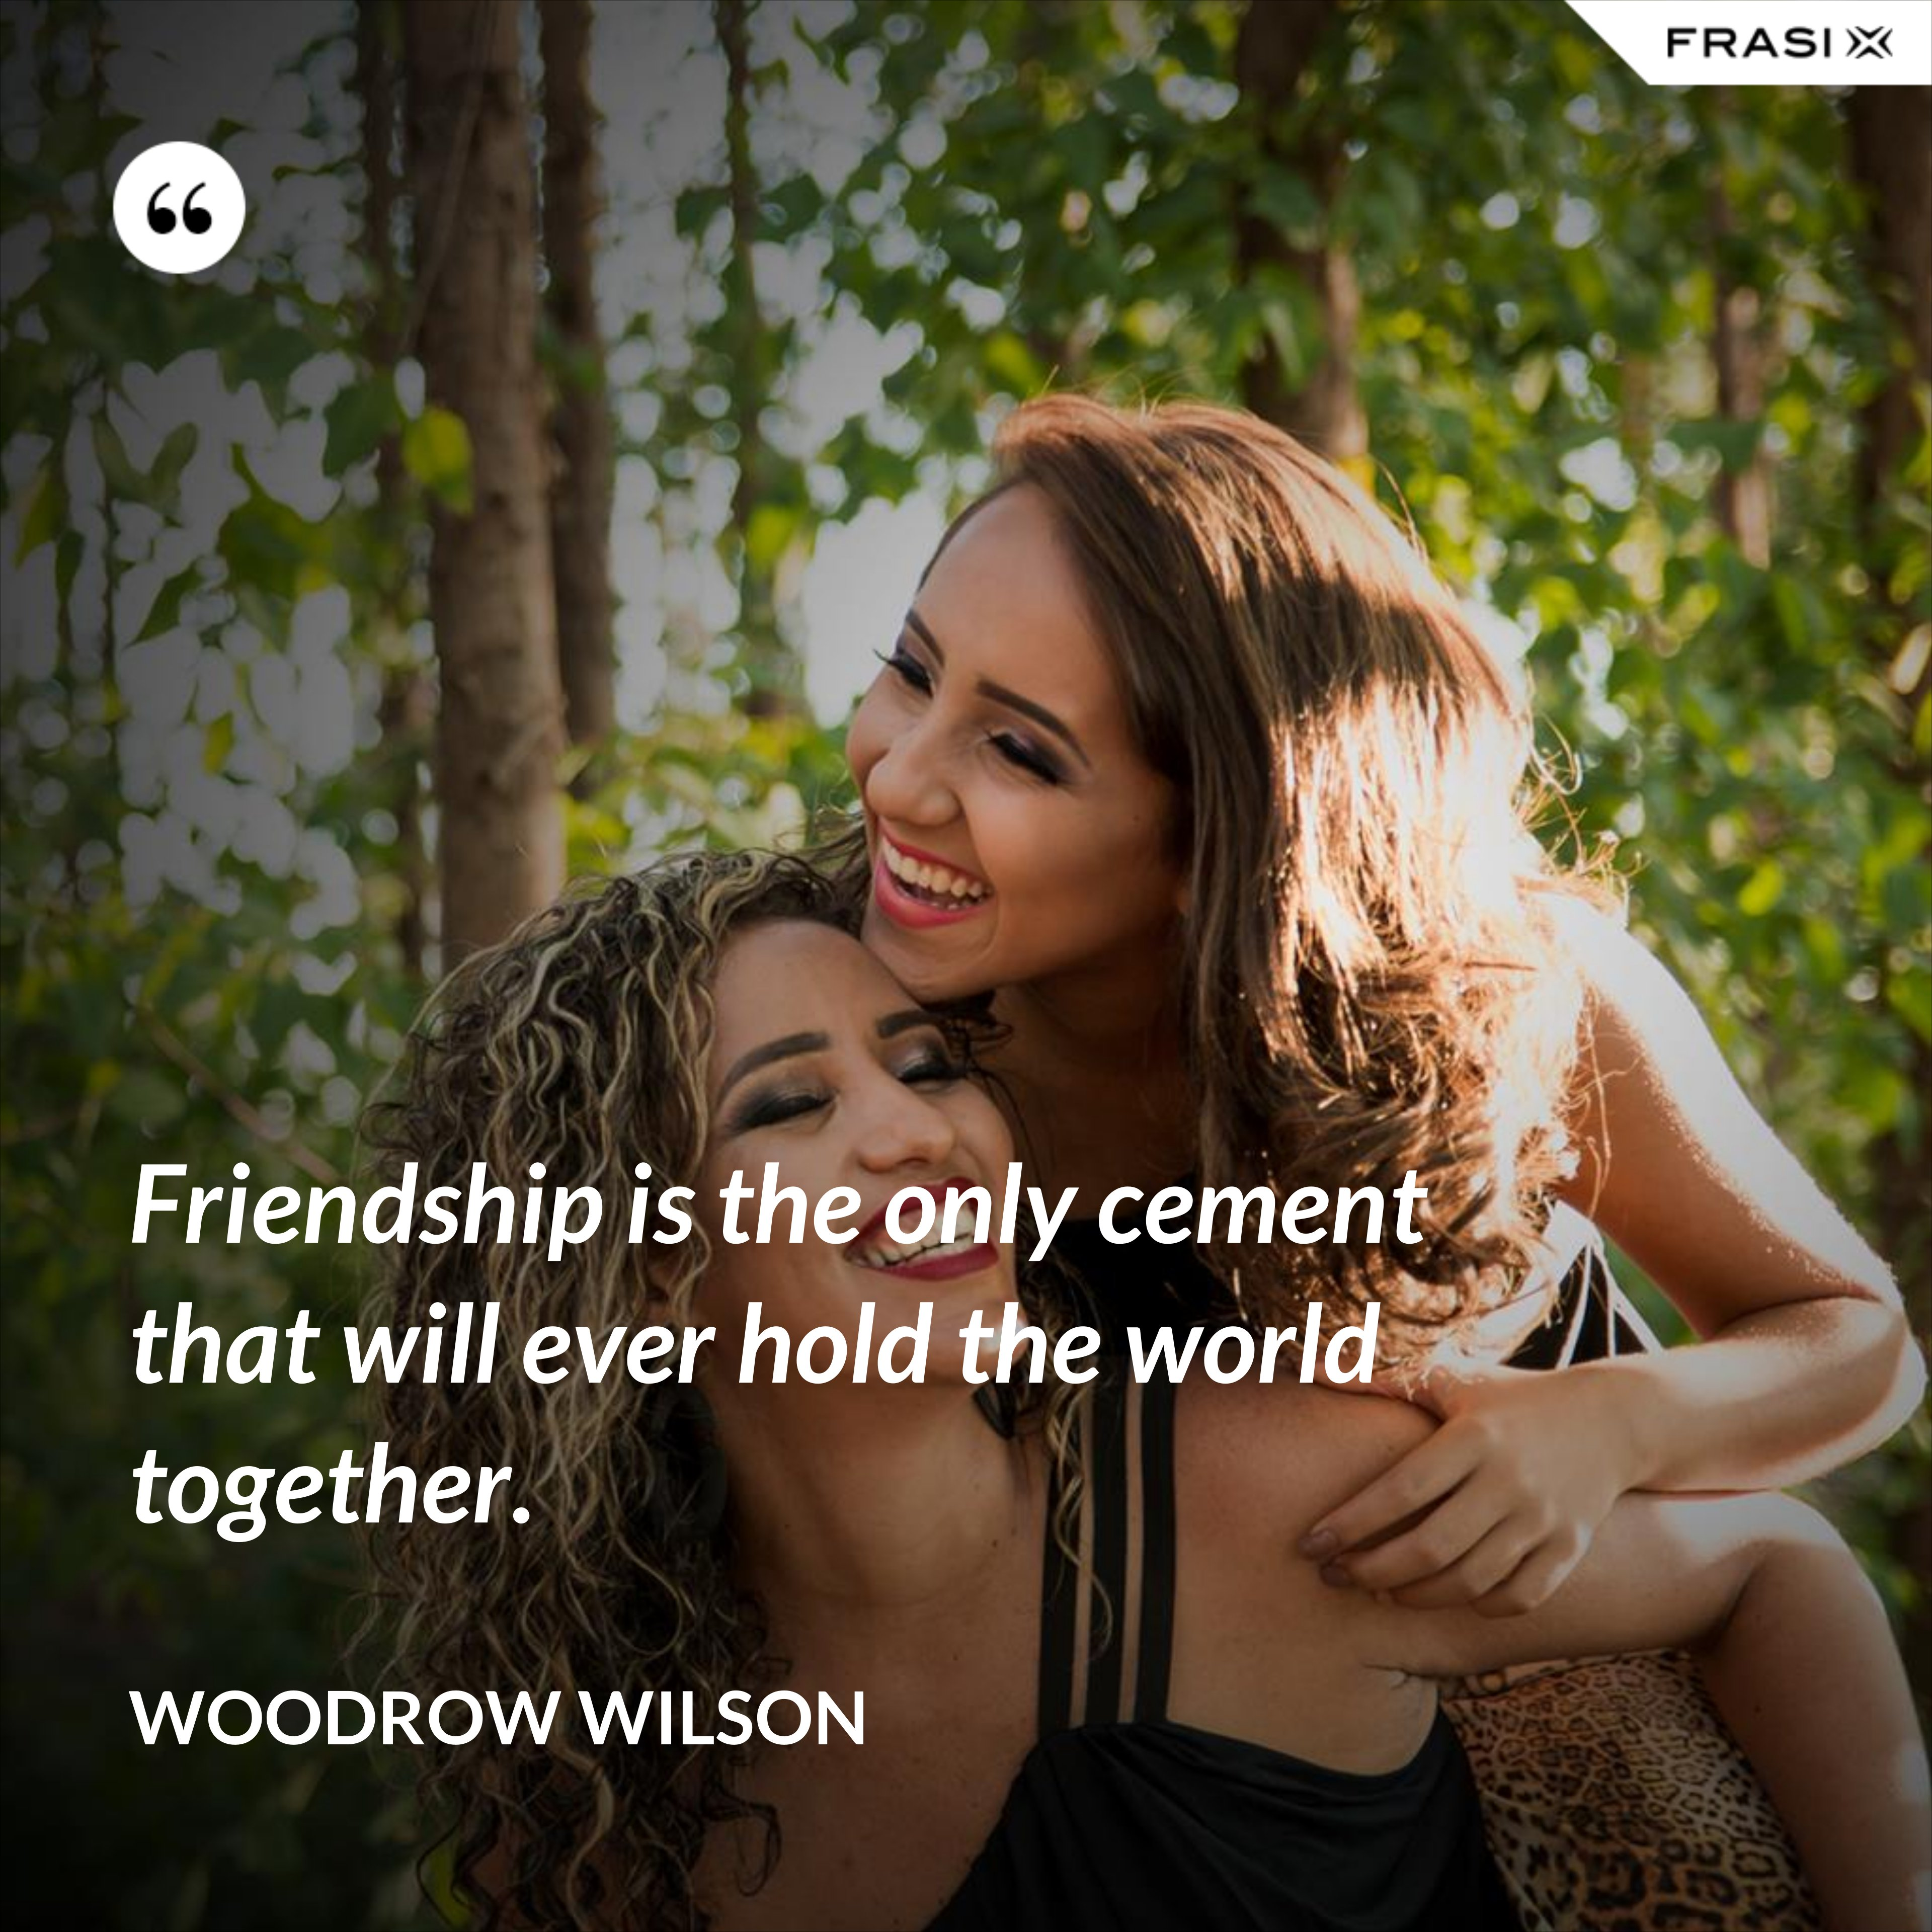 Friendship is the only cement that will ever hold the world together. - Woodrow Wilson